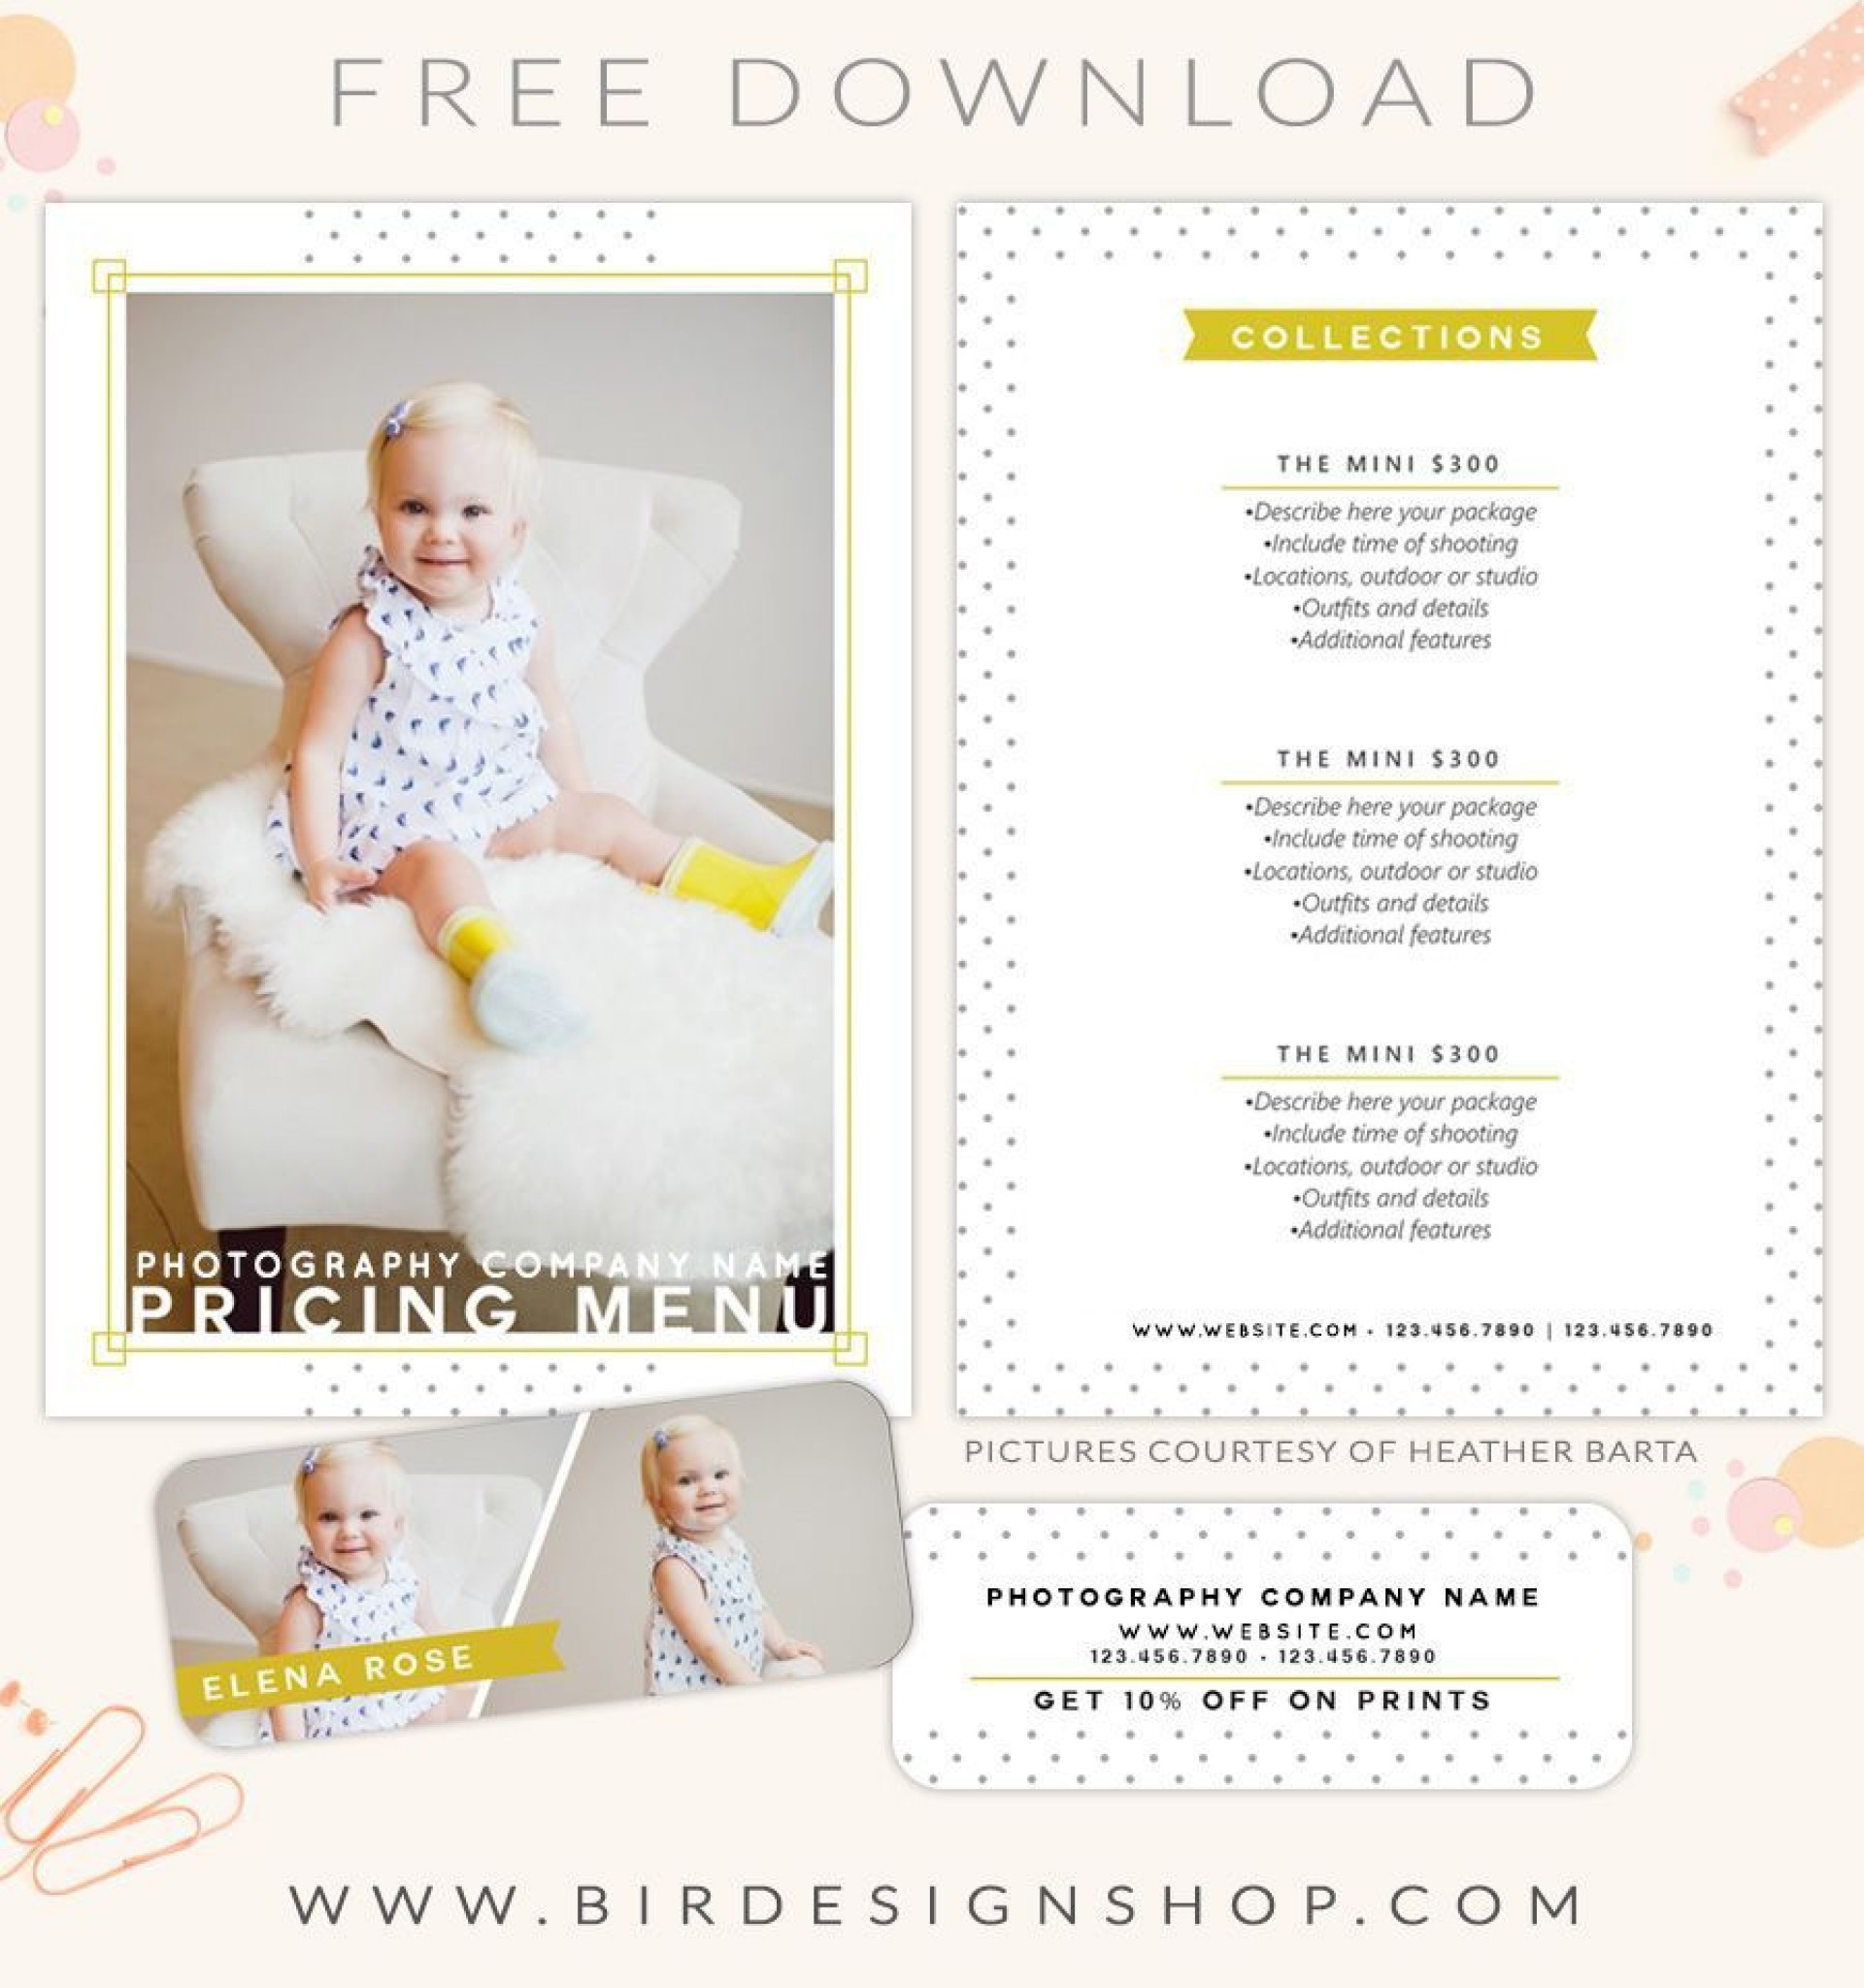 002 Awful Free Photography Package Template Highest Quality  Pricing1920